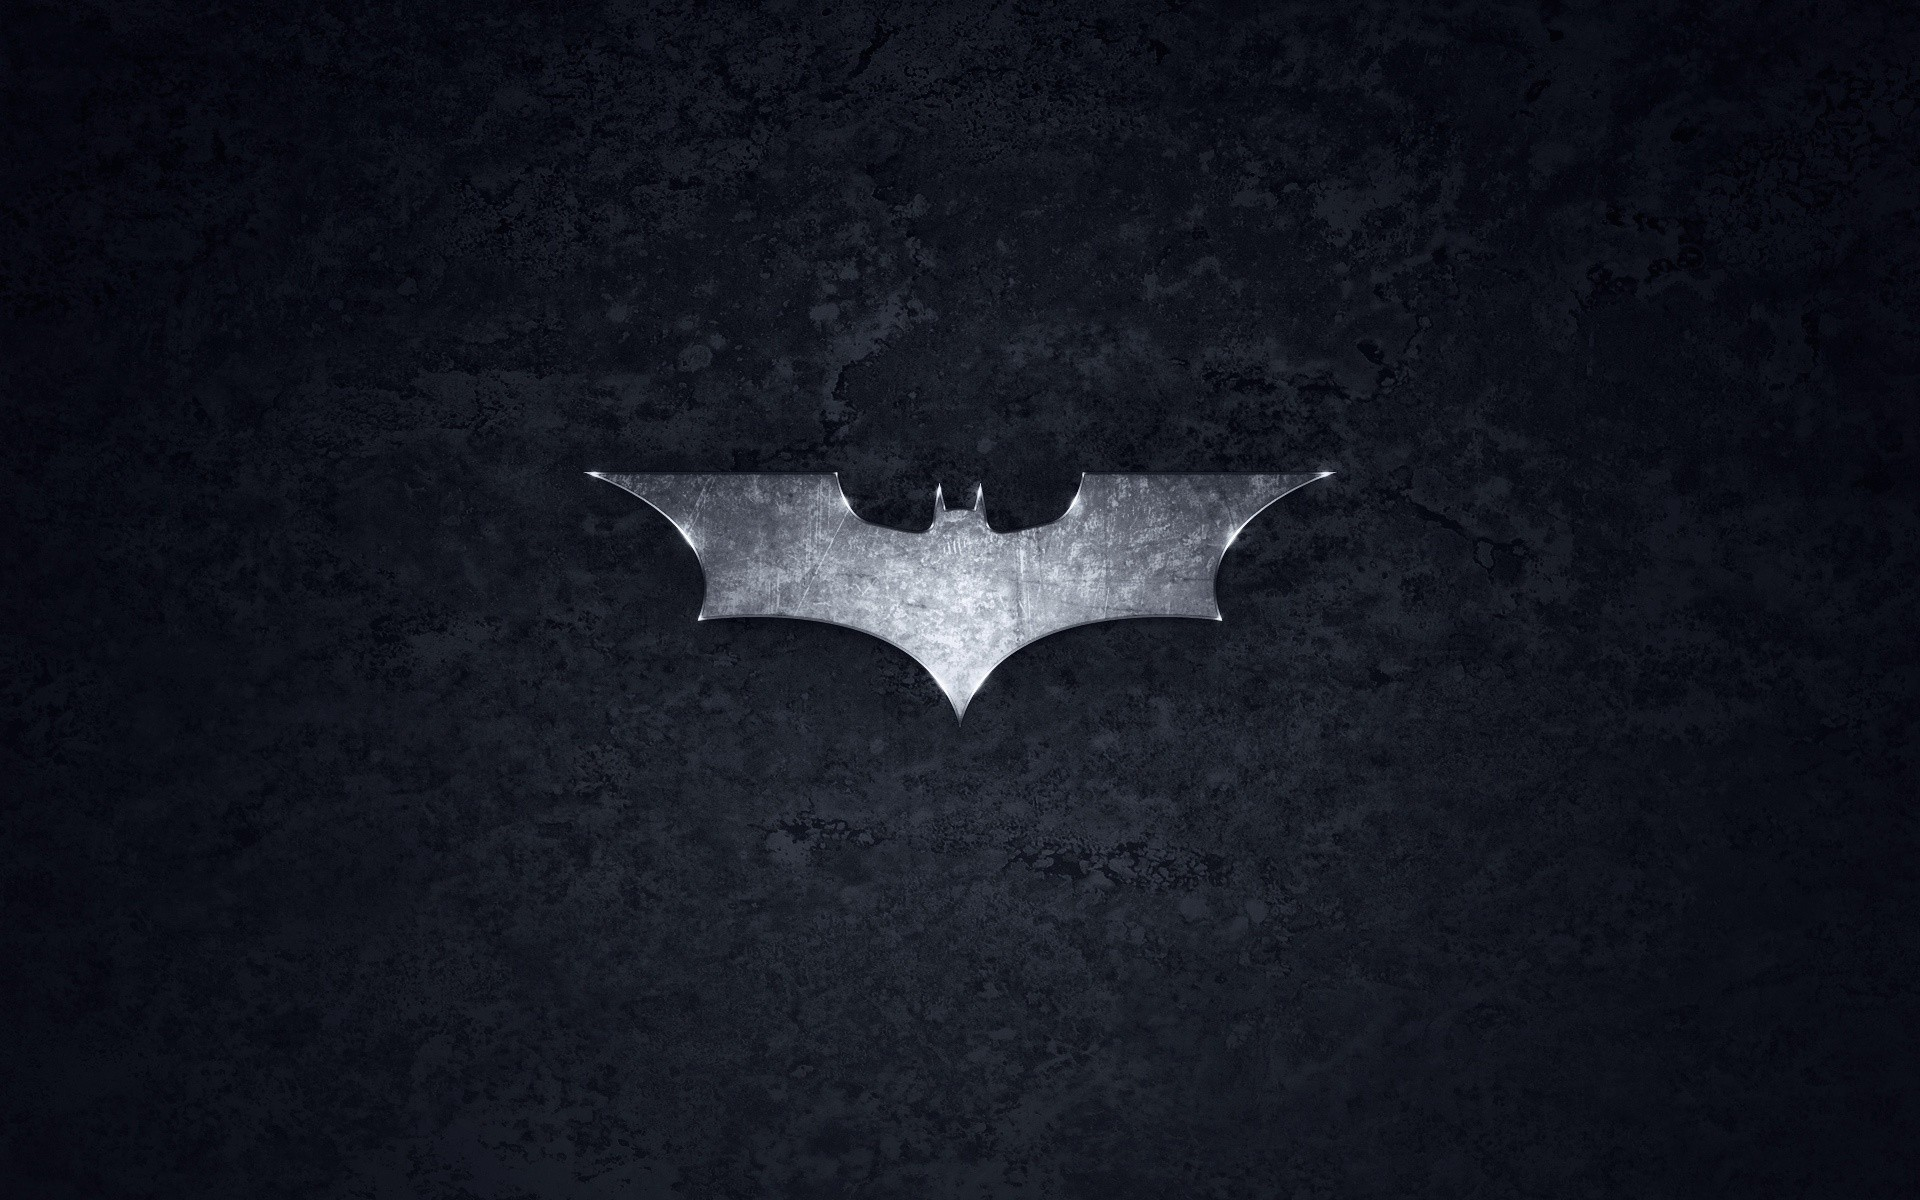 30 Batman HD Wallpapers for Desktop 1920x1200